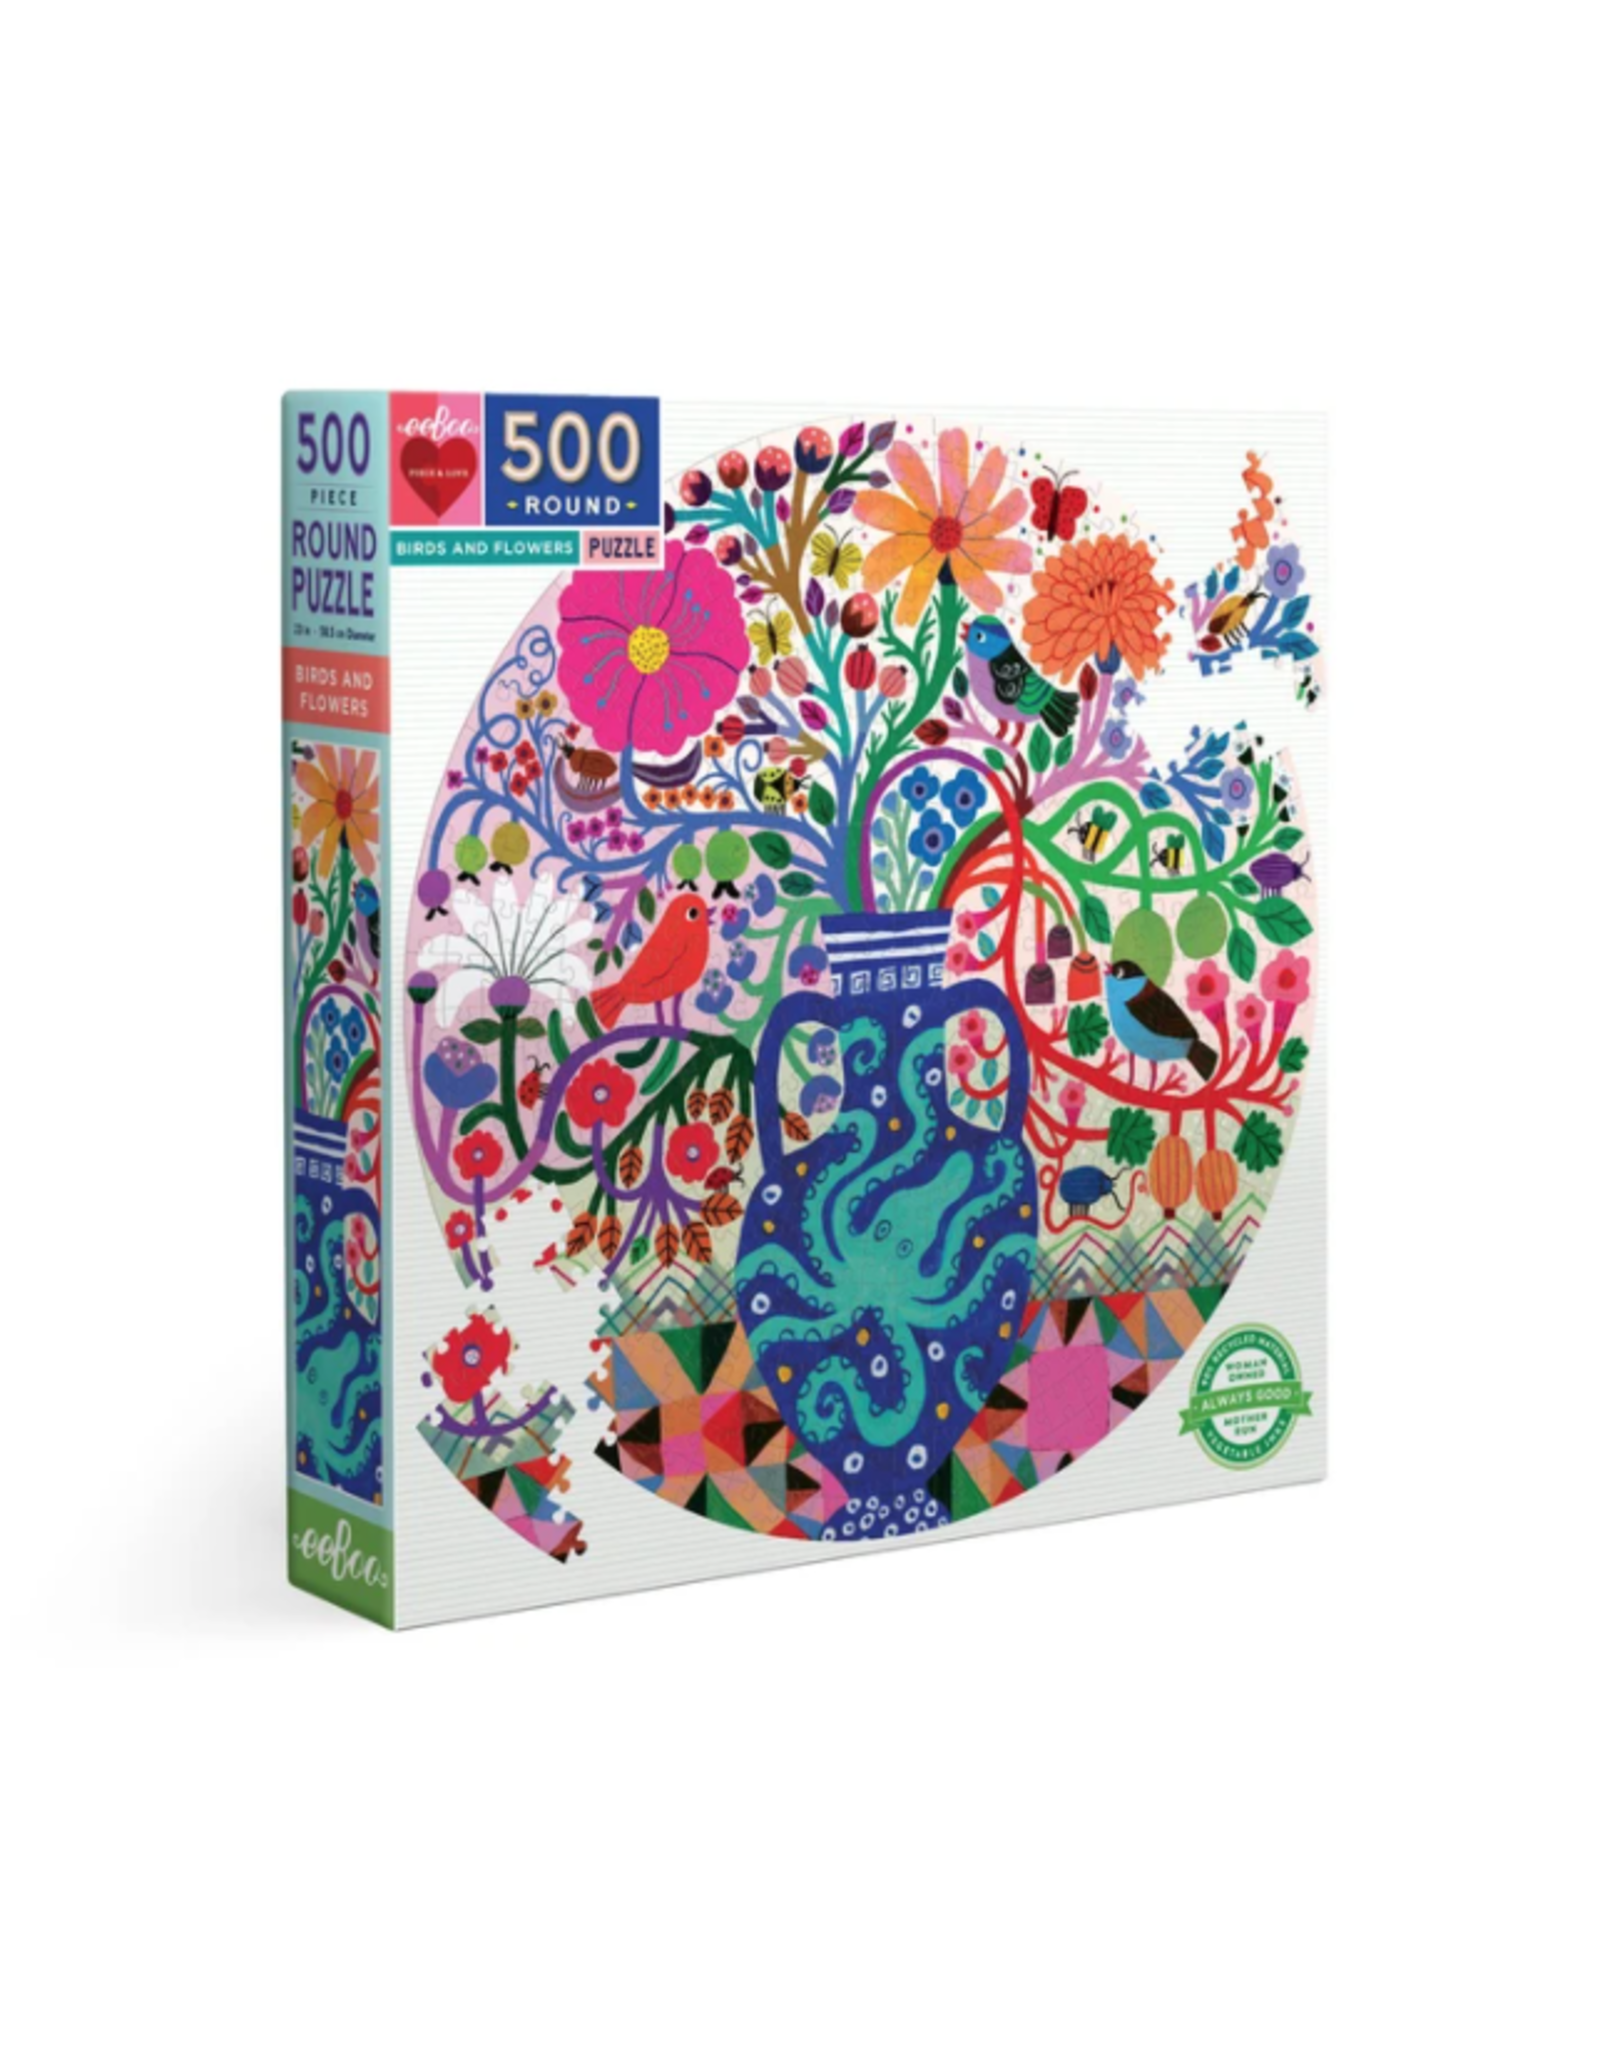 Eeboo 500 pcs. Birds and Flowers Round Puzzle